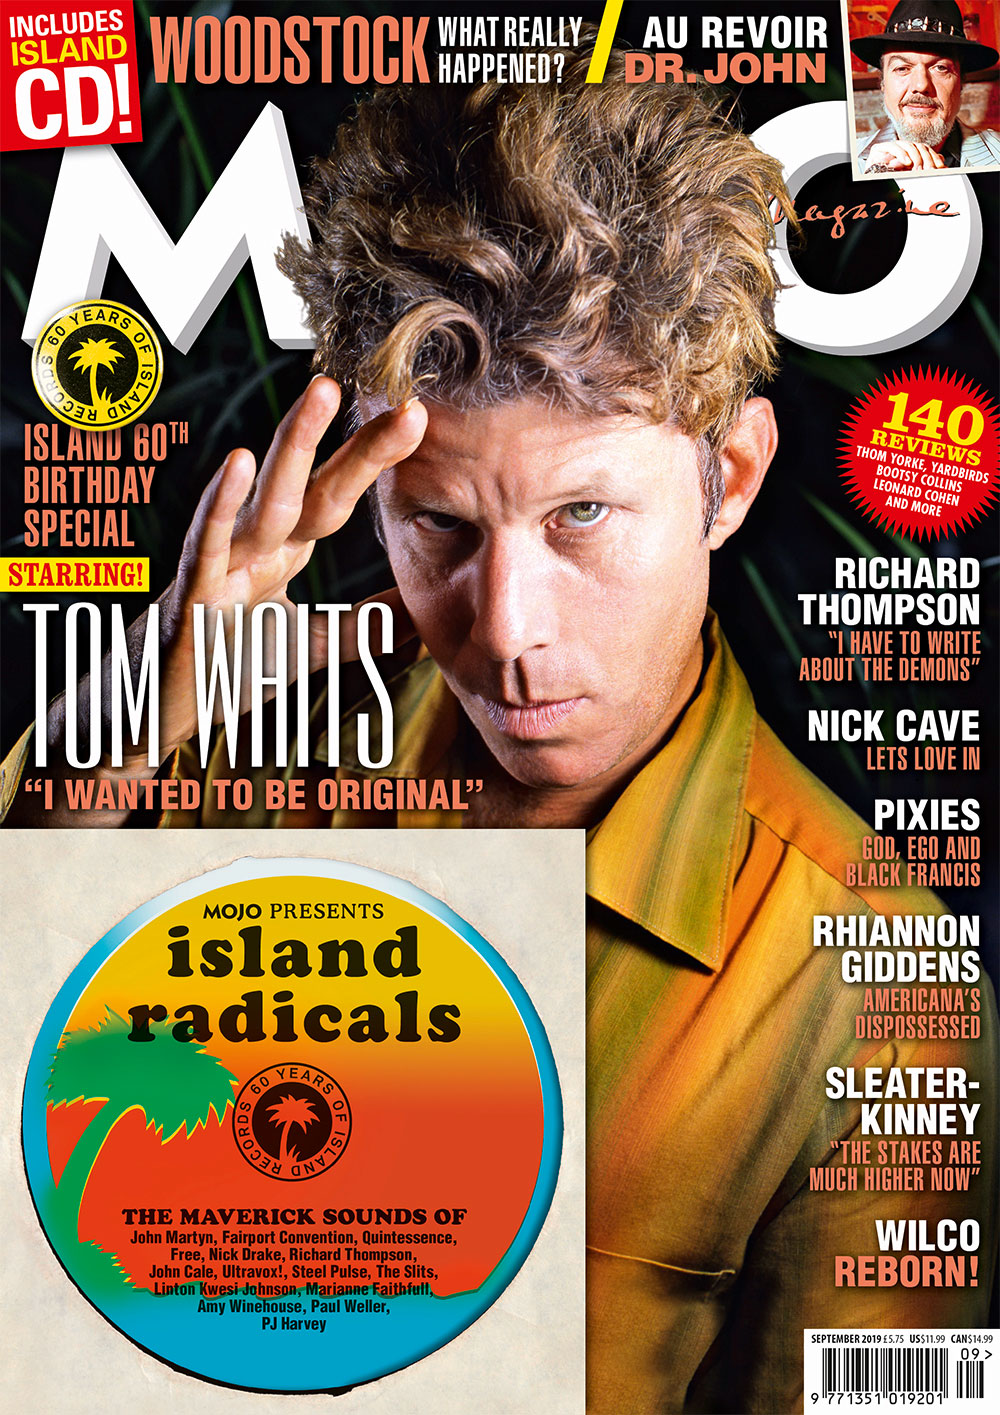 MOJO-310-cover-Tom-Waits-1000-lite.jpg